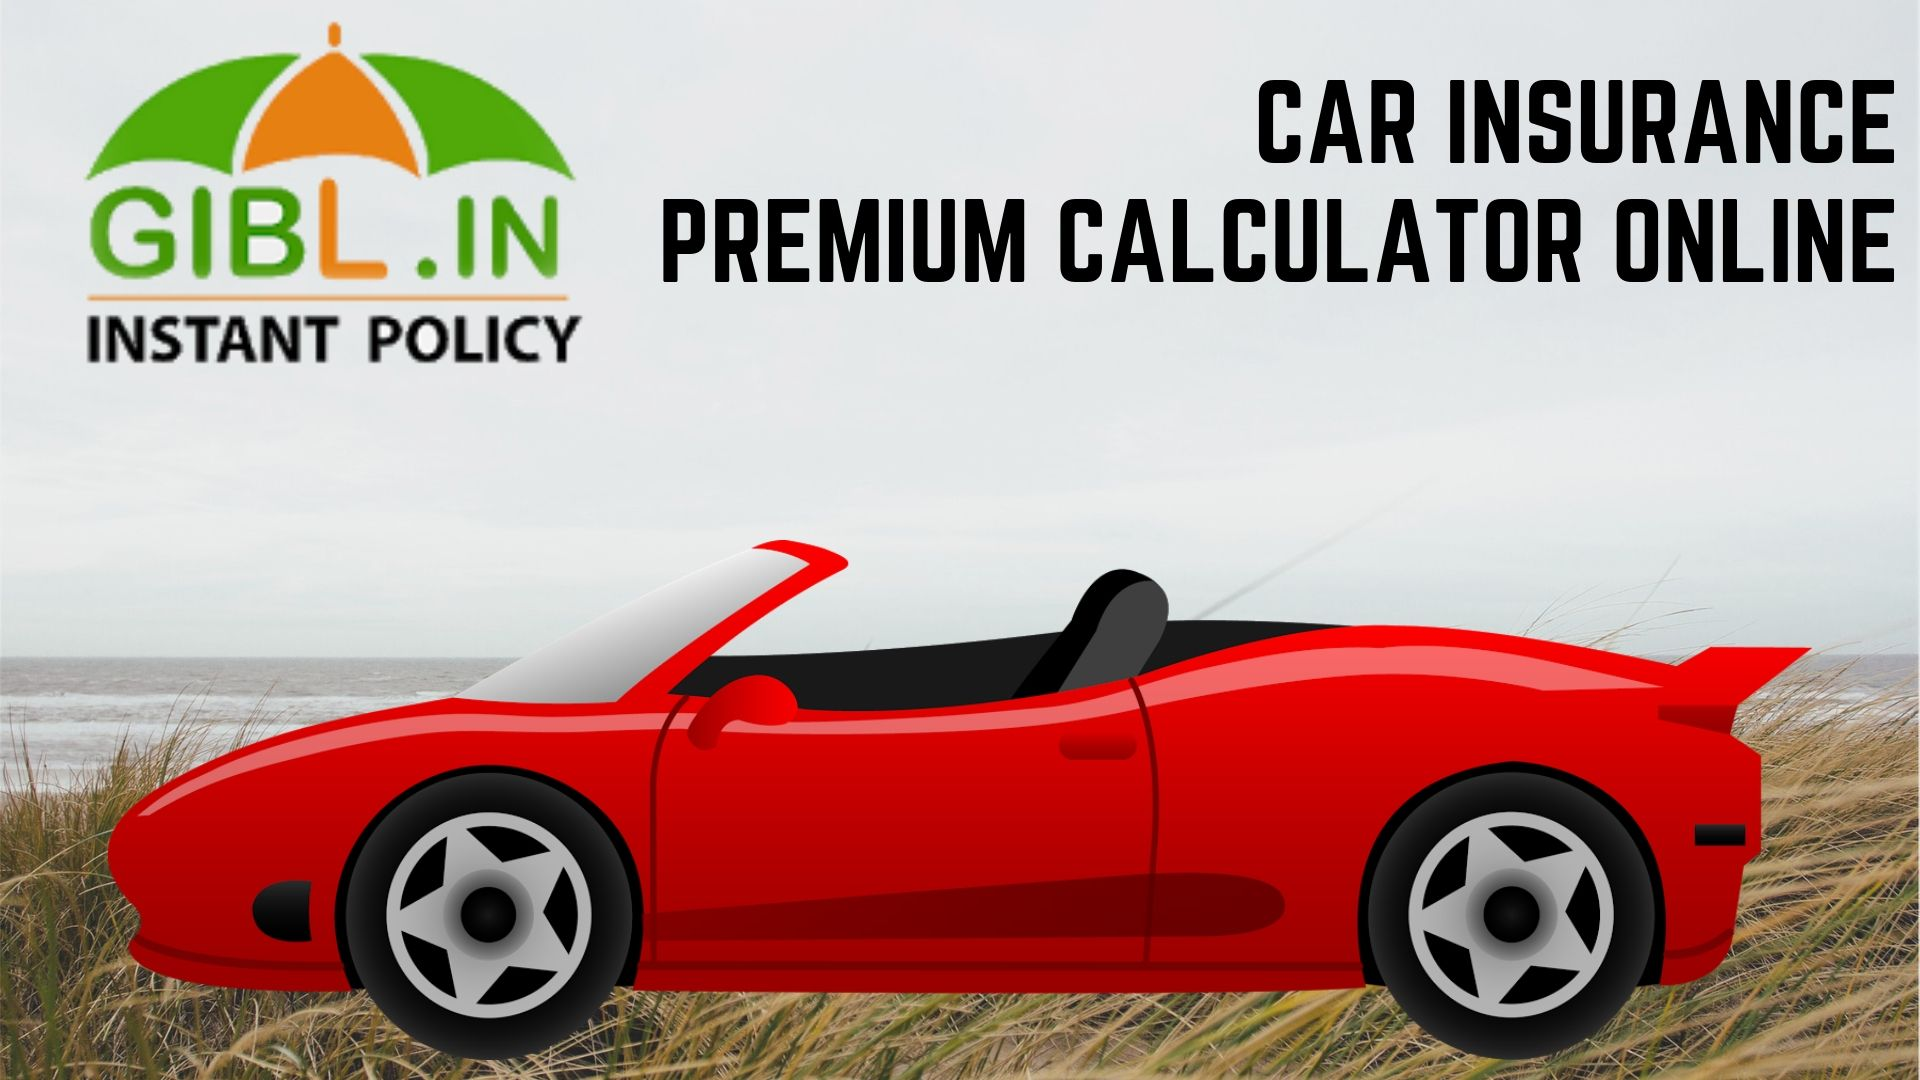 What Are Some Of The Unique Benefits Of Car Insurance Premium